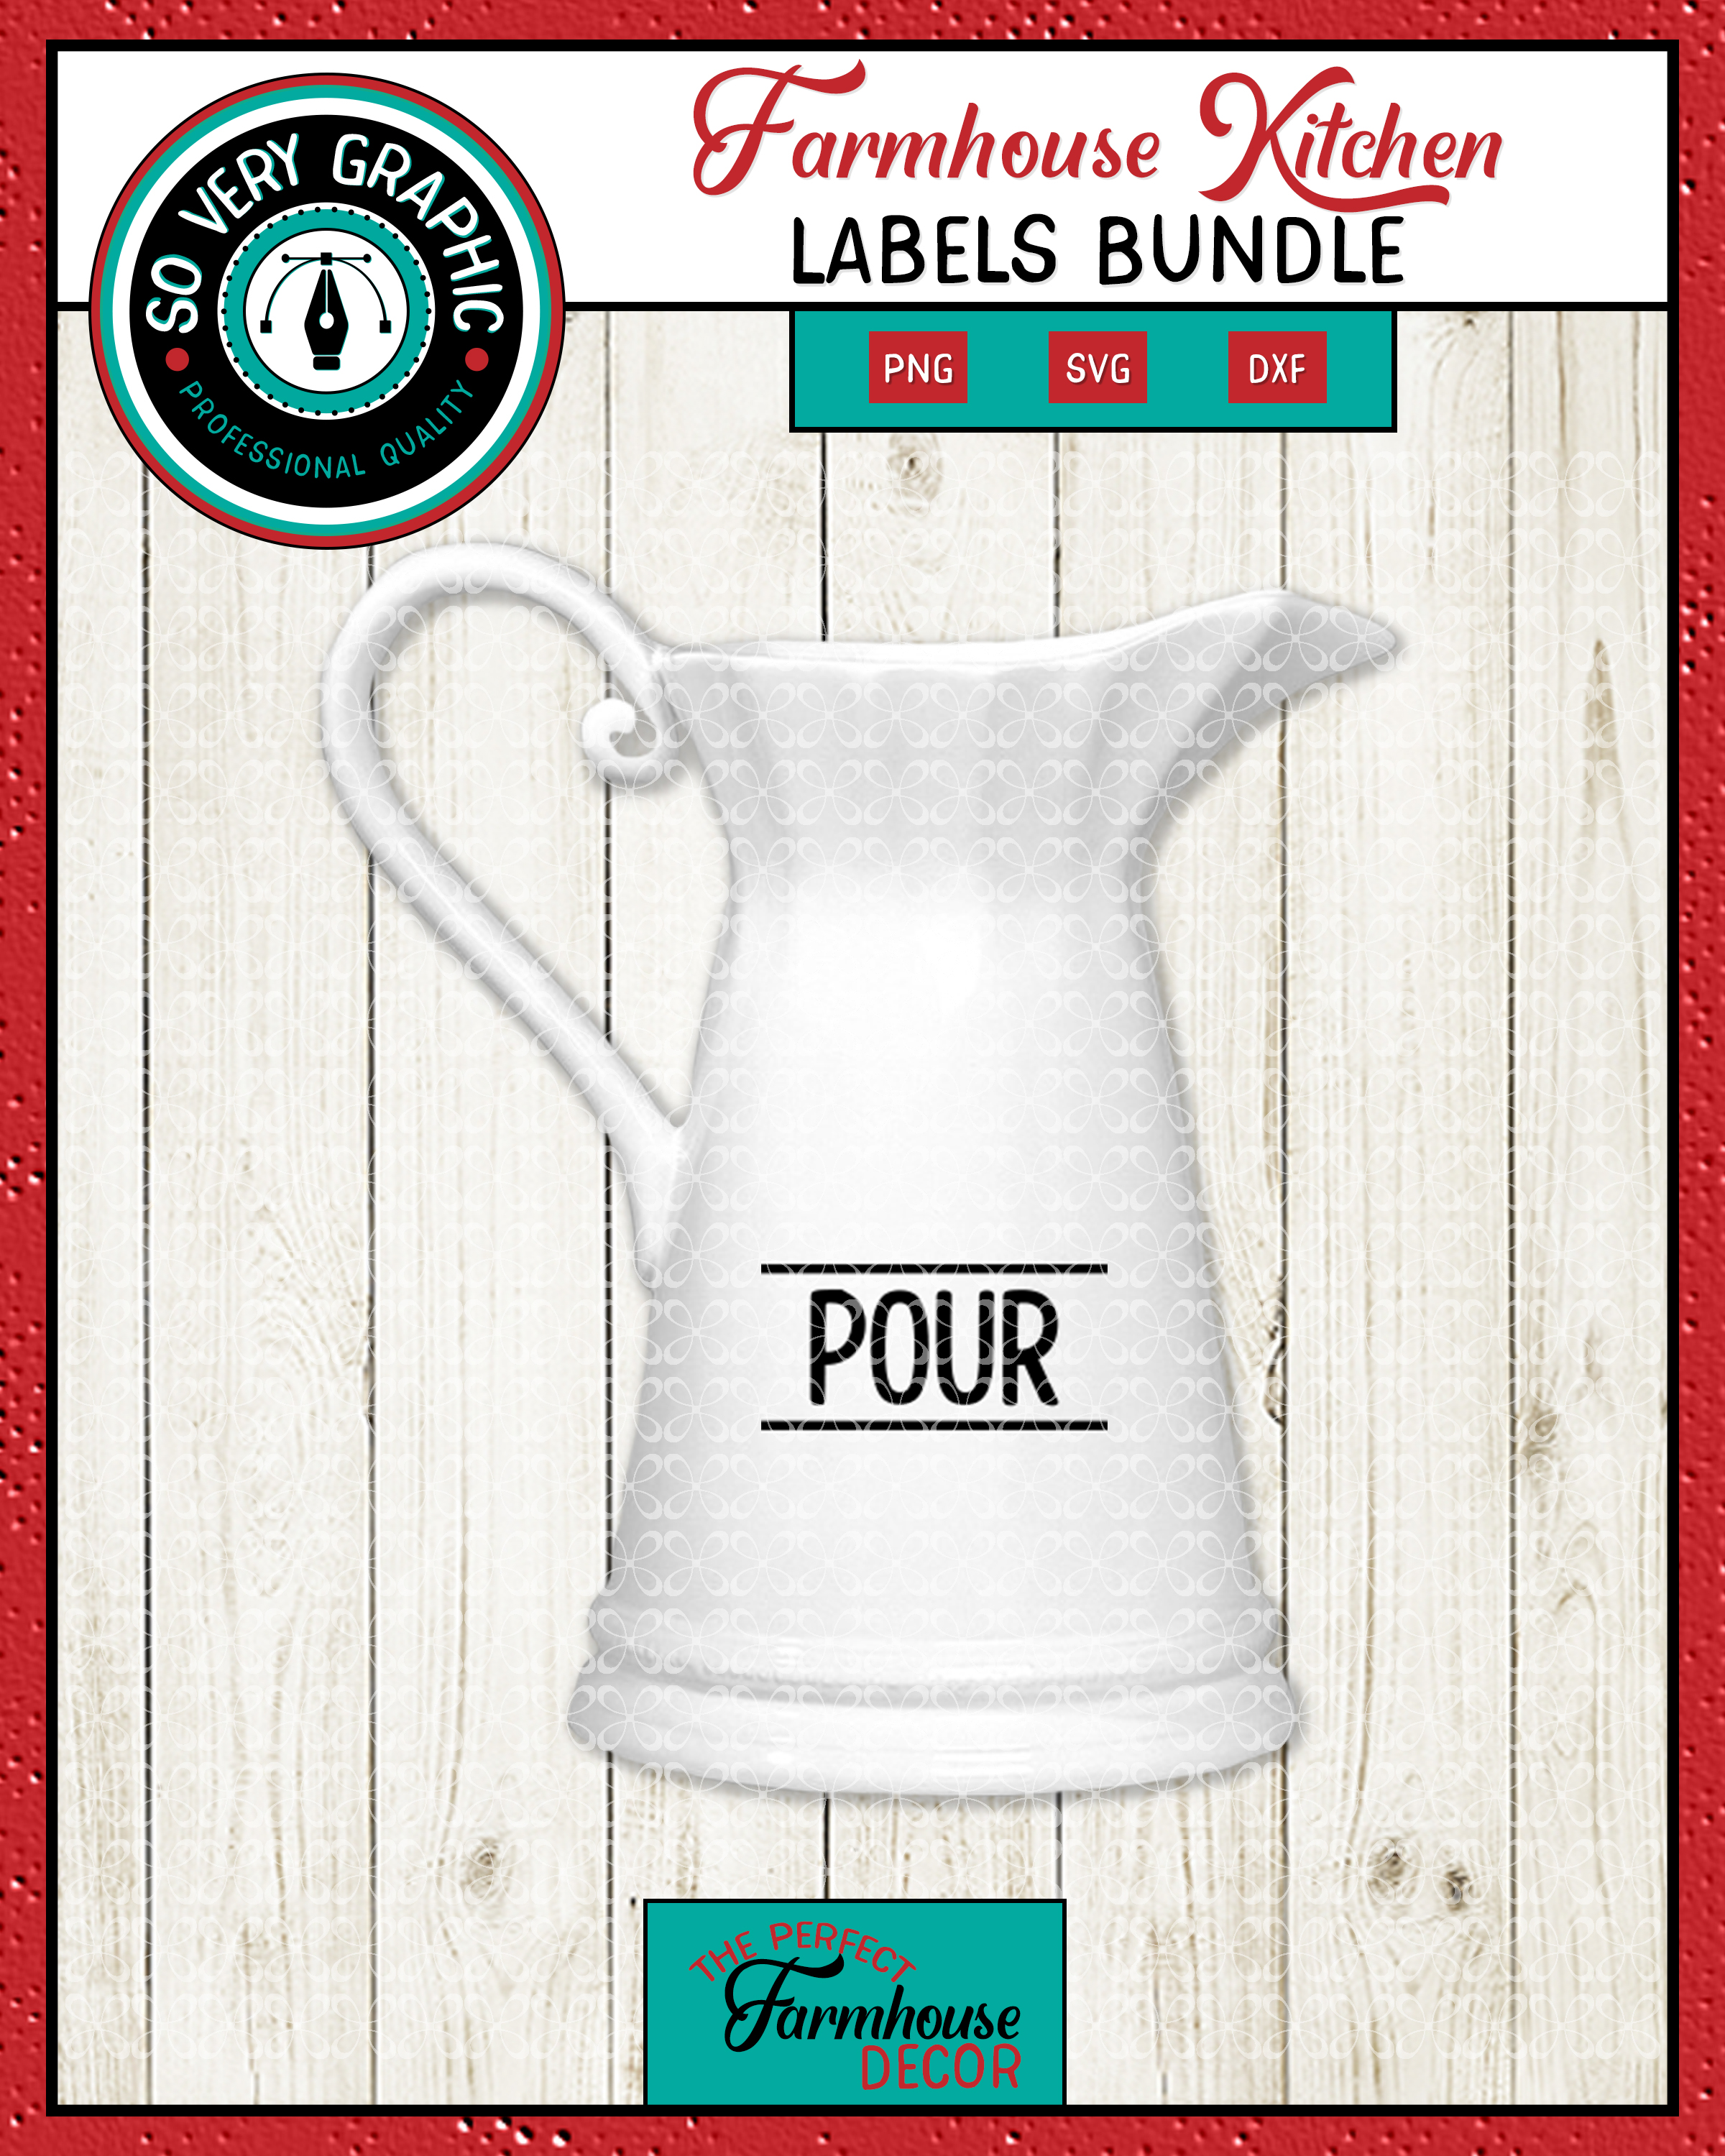 Farmhouse Kitchen Labels Bundle | Canister Pantry Decals SVG example image 3